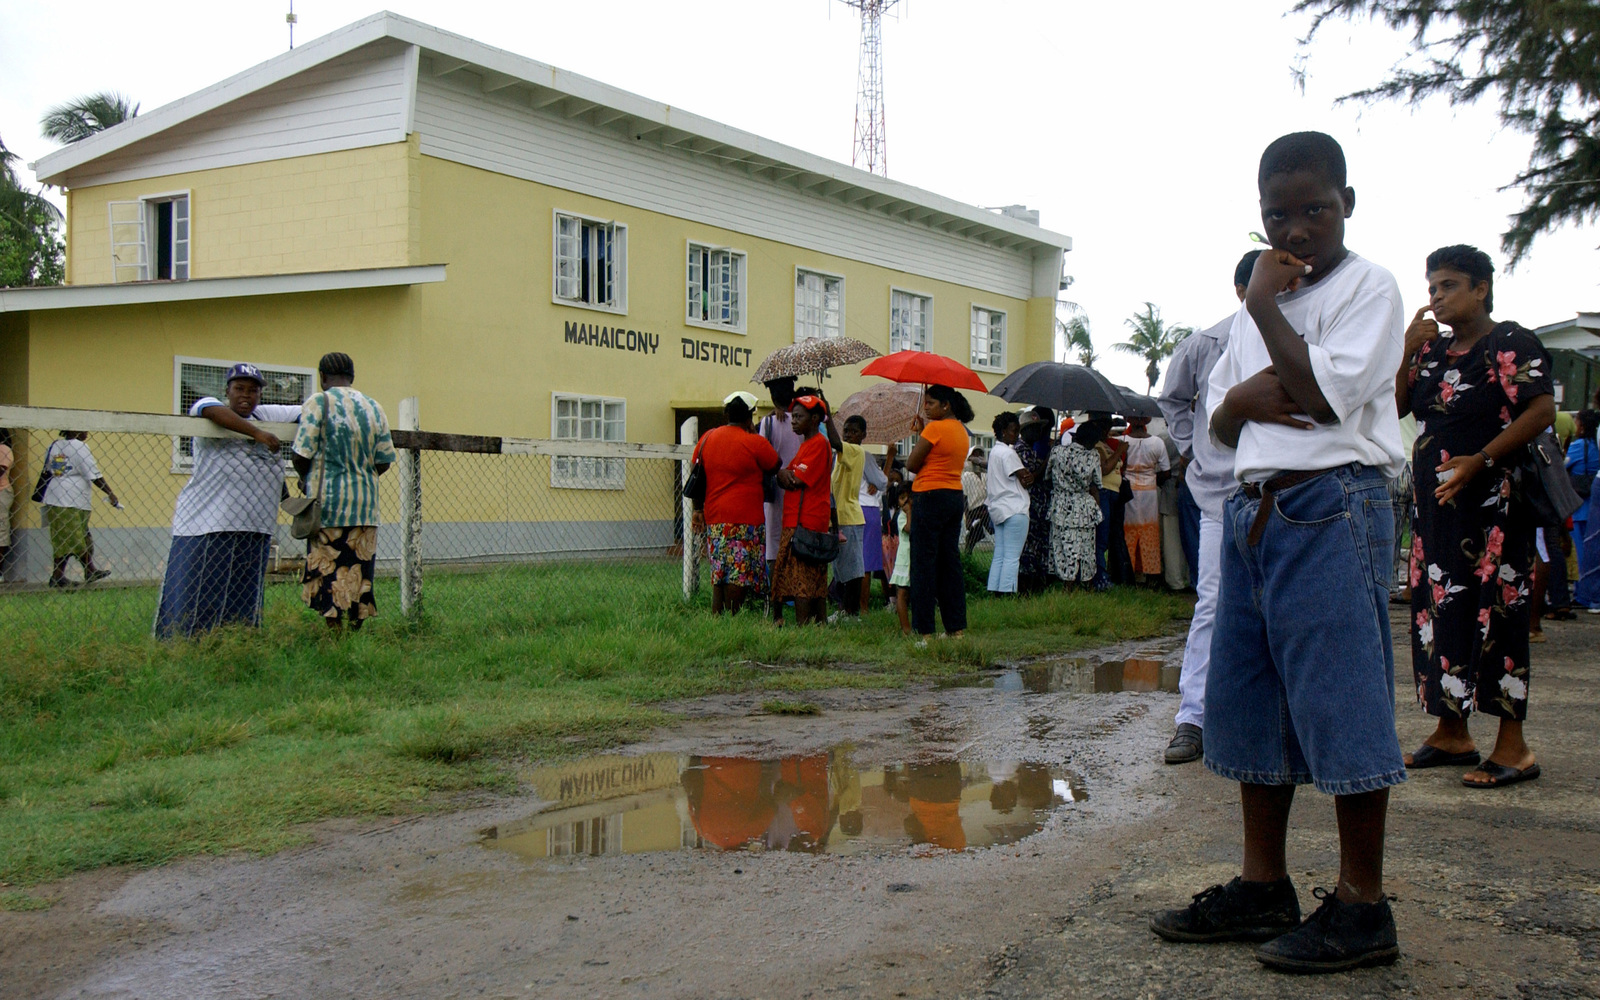 A local boy stares directly at the camera, while standing in line in front of the Mahaicony District Hospital, Mahaicony, Guyana (GUY) during a Medical Readiness Training Exercise (MEDRETE) mission in support of Exercise New Horizons 2004-Guyana. The exercise is co-sponsored by the US Southern Command (SOUTHCOM) and the Guyana (GUY) Defense Force (GDF)